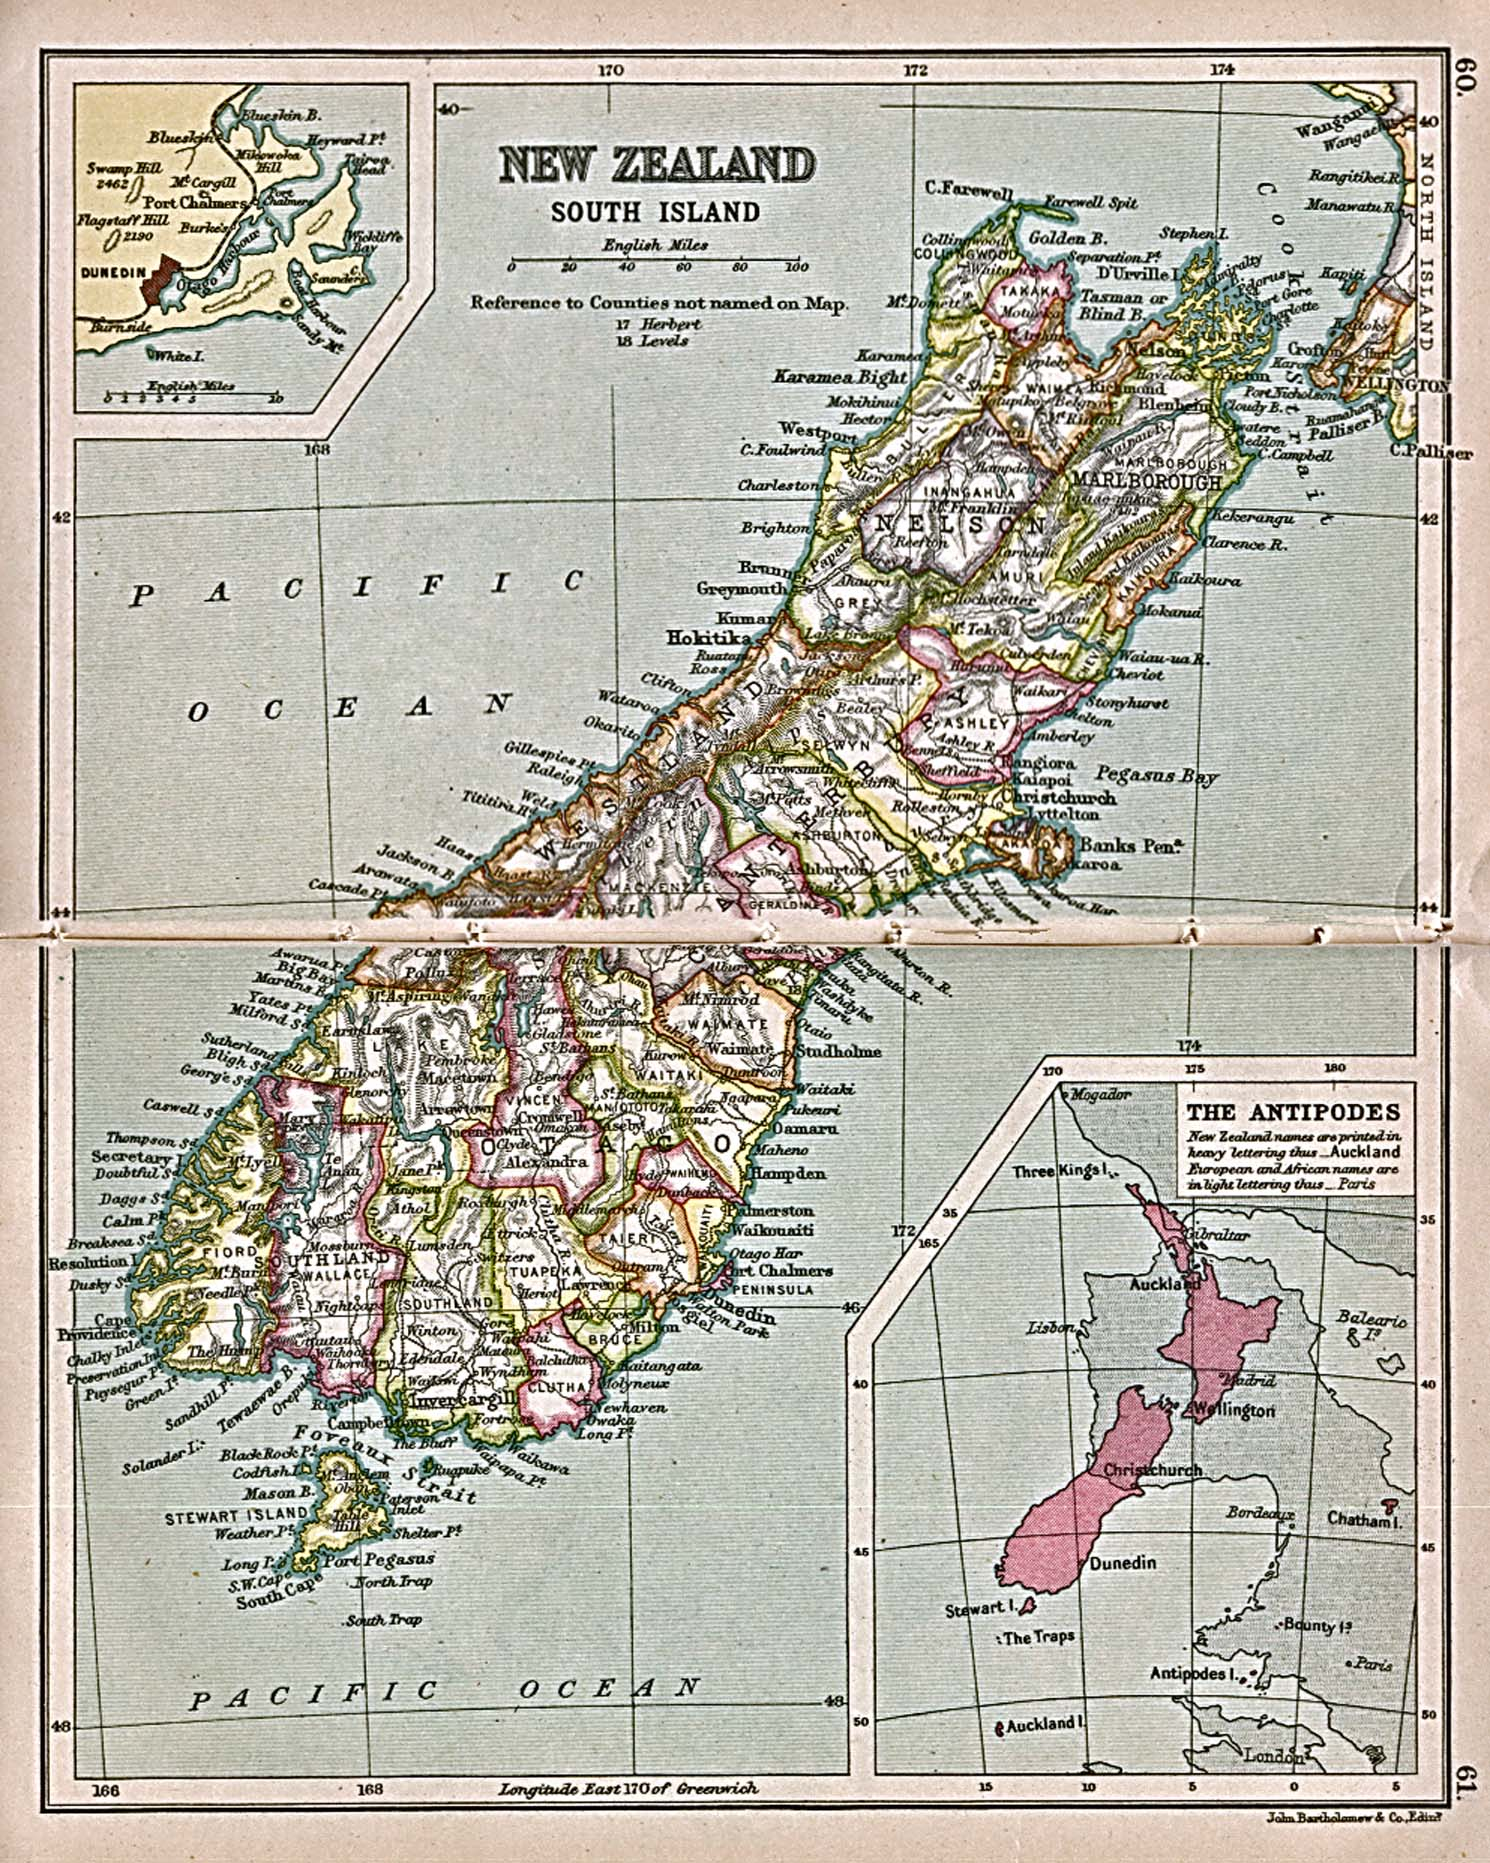 1Up Travel Historical Maps of Australia and the PacificNew – New Zealand Tourist Map South Island